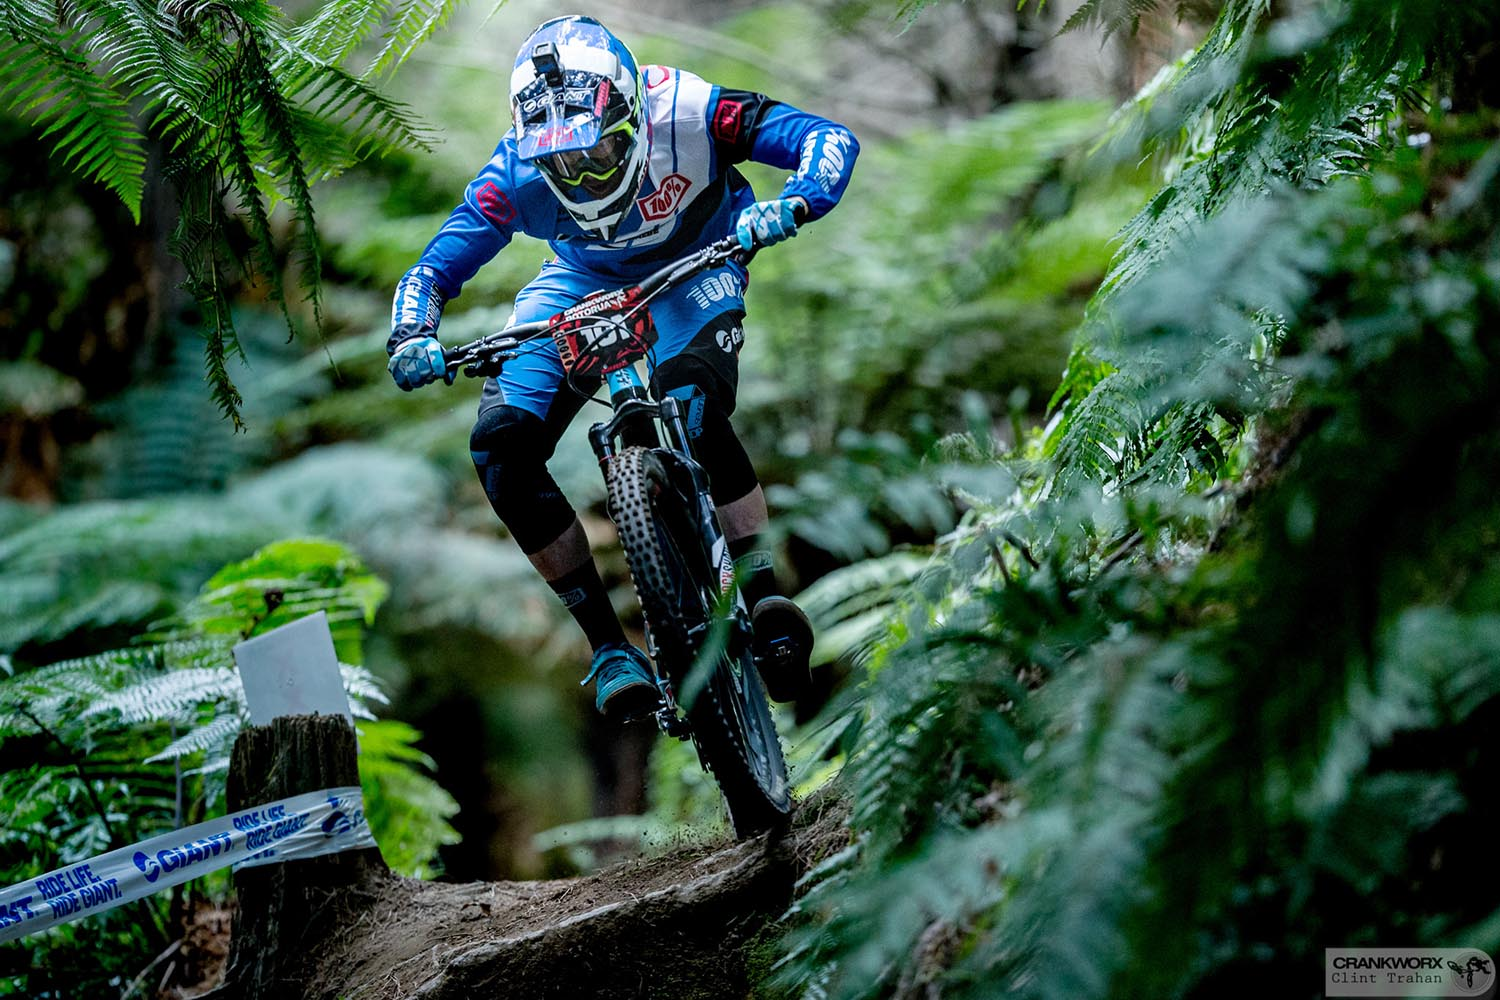 1933d779aaa Crankworx Rotorua to host the first round of the 2017 EWS — Spoke ...